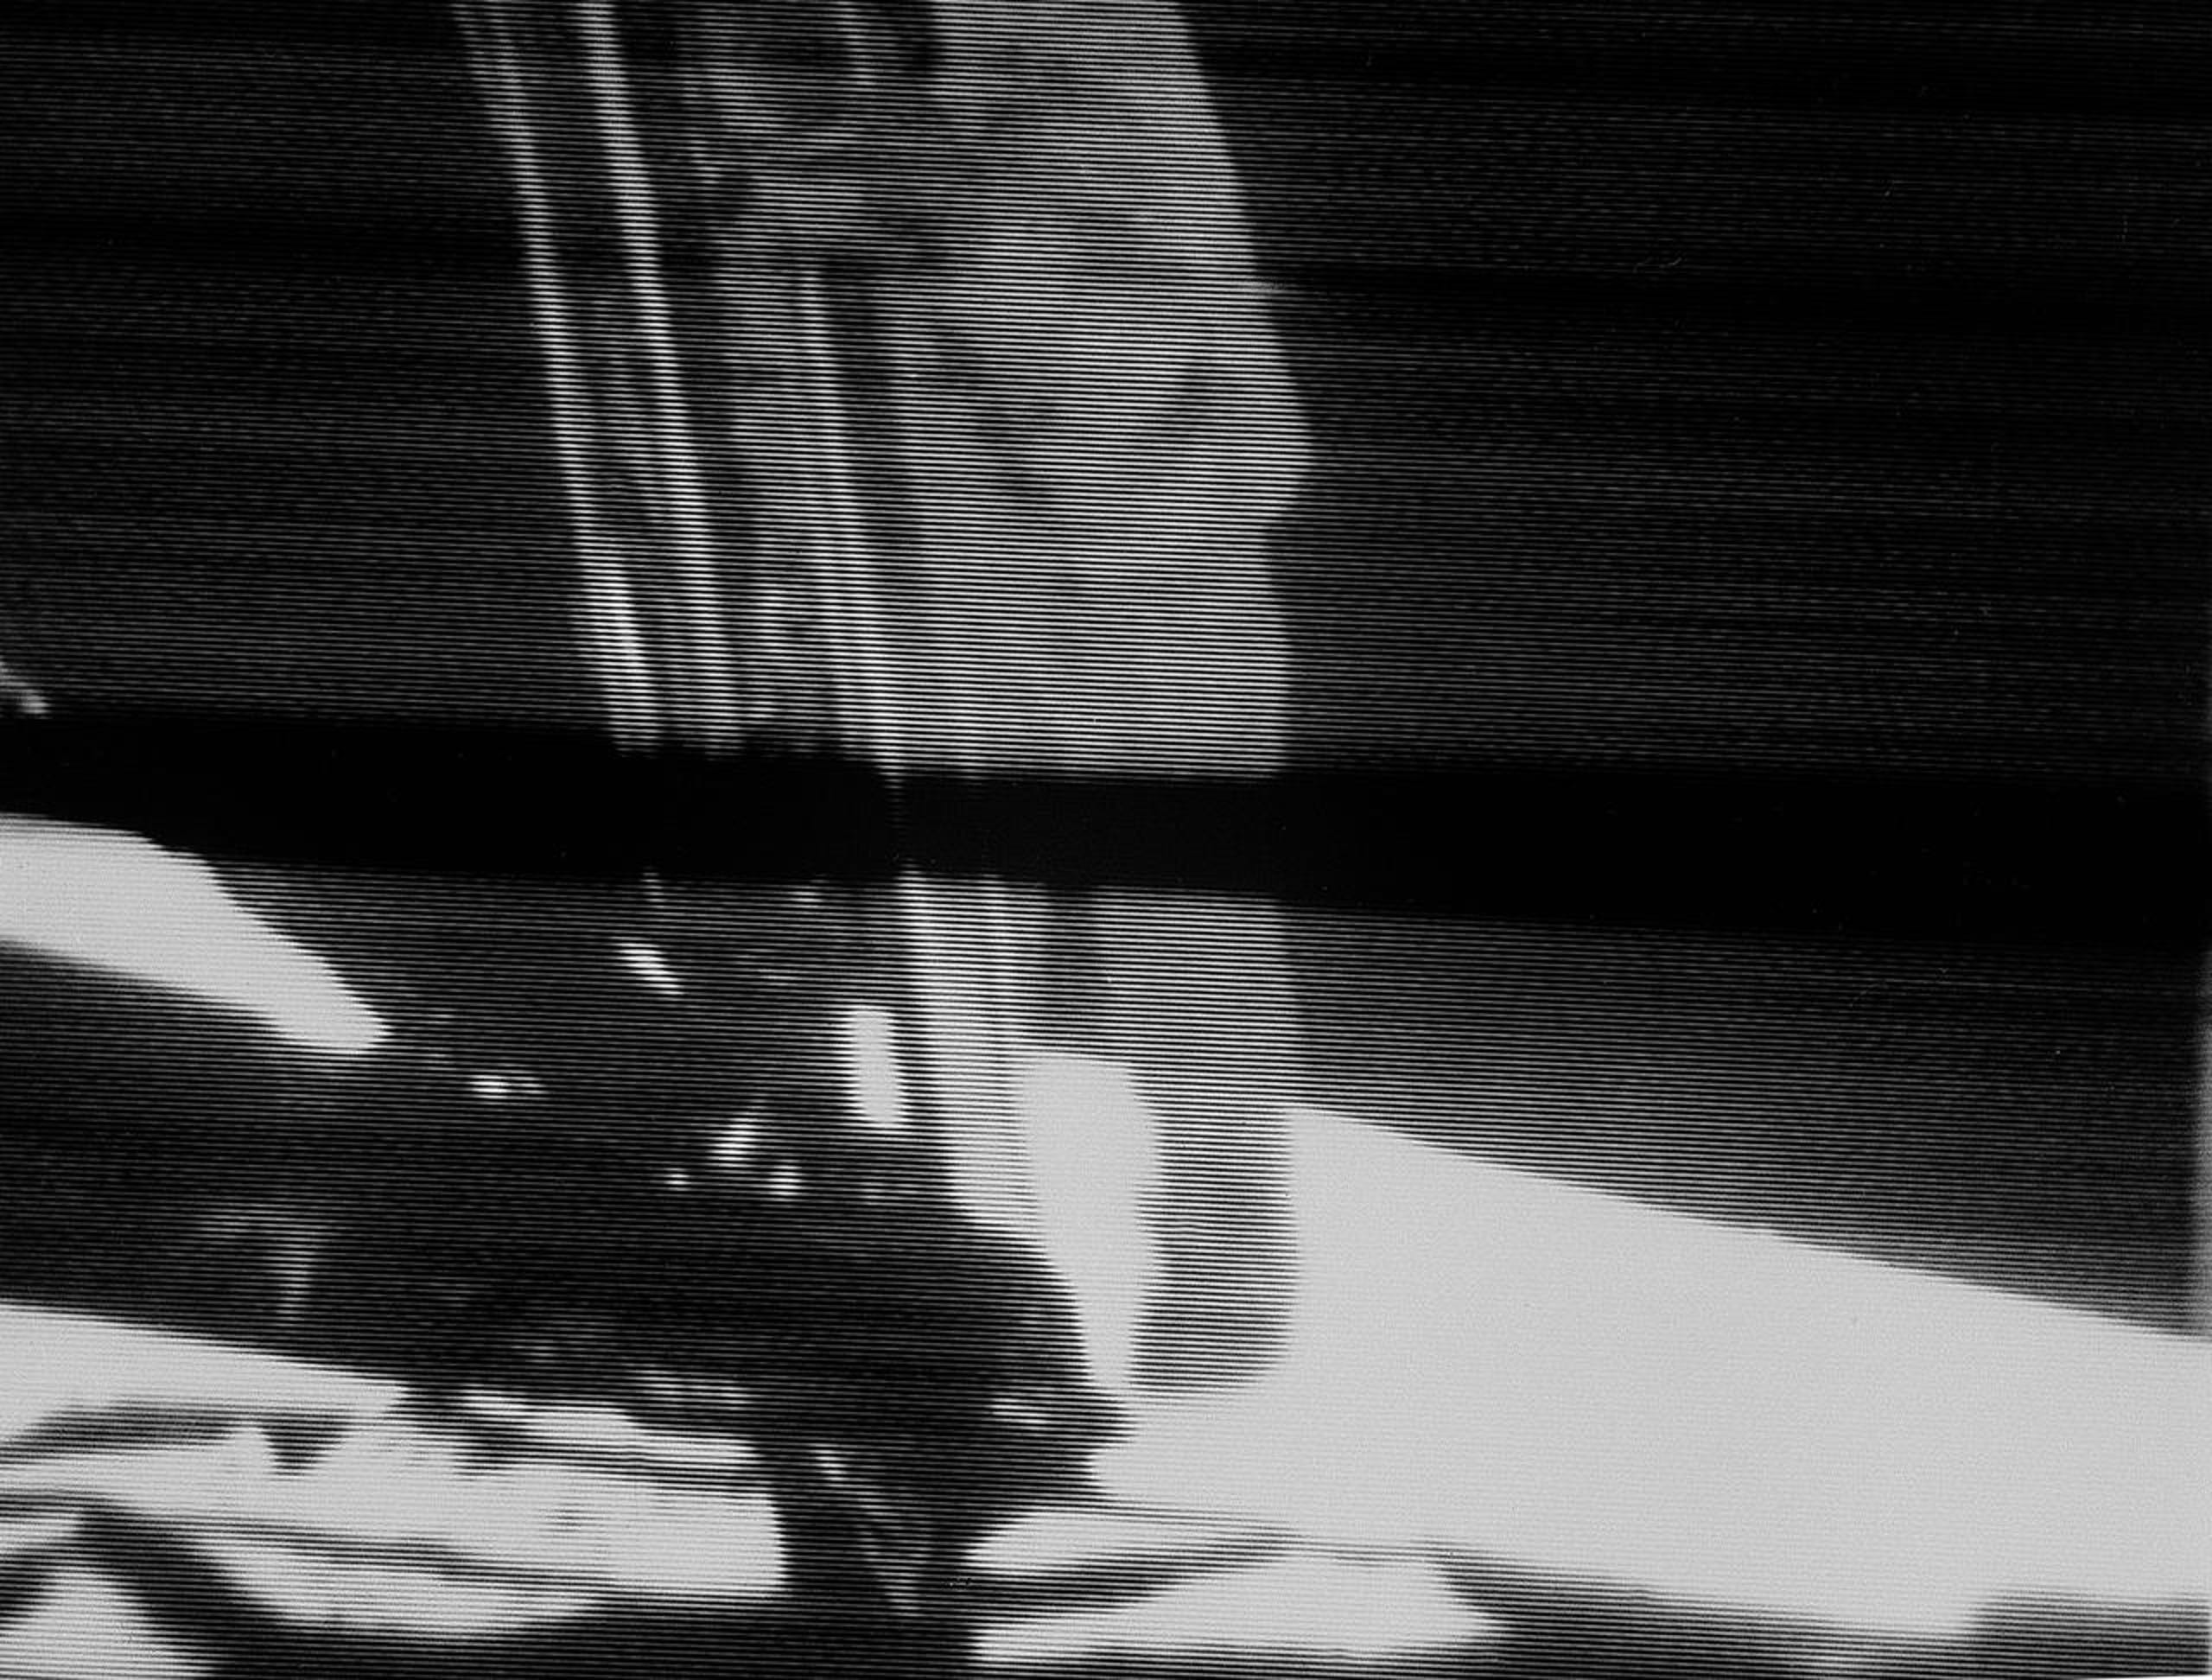 Neil Armstrong, Apollo 11 commander, descends the ladder of the Apollo 11 Lunar Module on July 20, 1969 before making the first step by a human on another celestial body. This view is a black and white reproduction taken from a telecast by the Apollo 11 lunar surface camera. The black bar running through the center of the picture is an anomaly in the television ground data system.